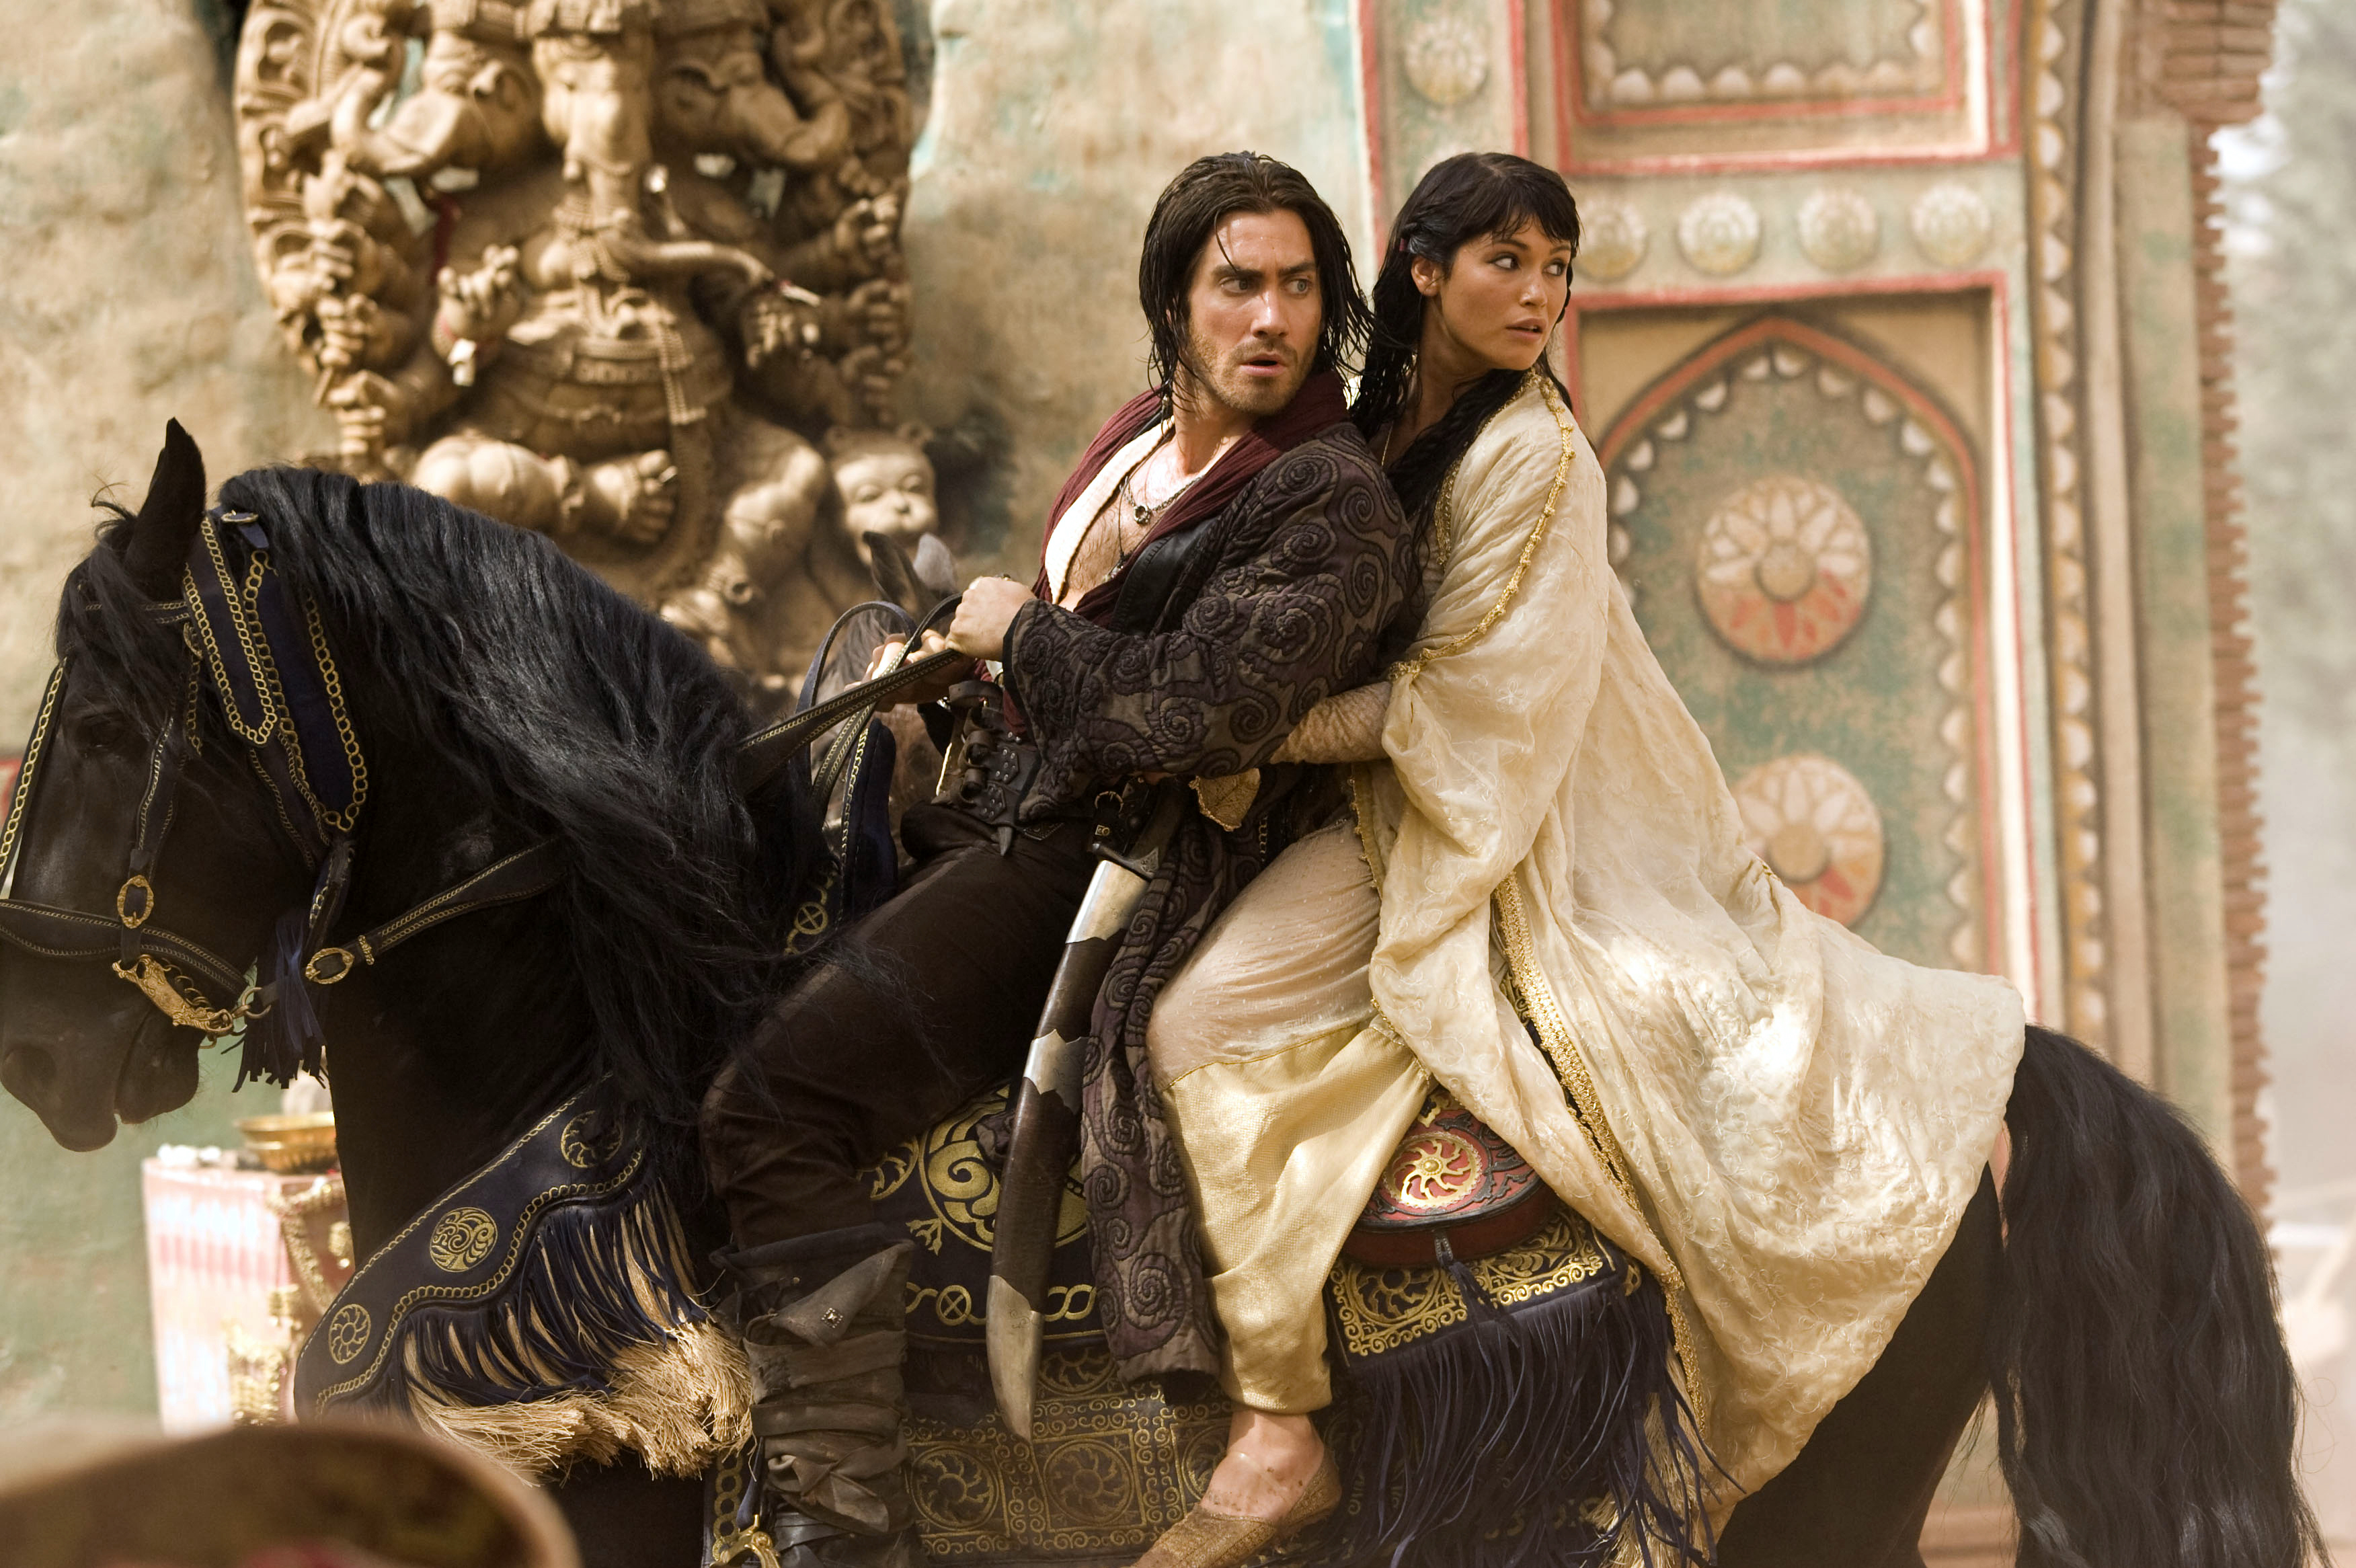 Download Prince Of Persia Live Wallpaper Gallery |Prince Of Persia Movie Wallpapers